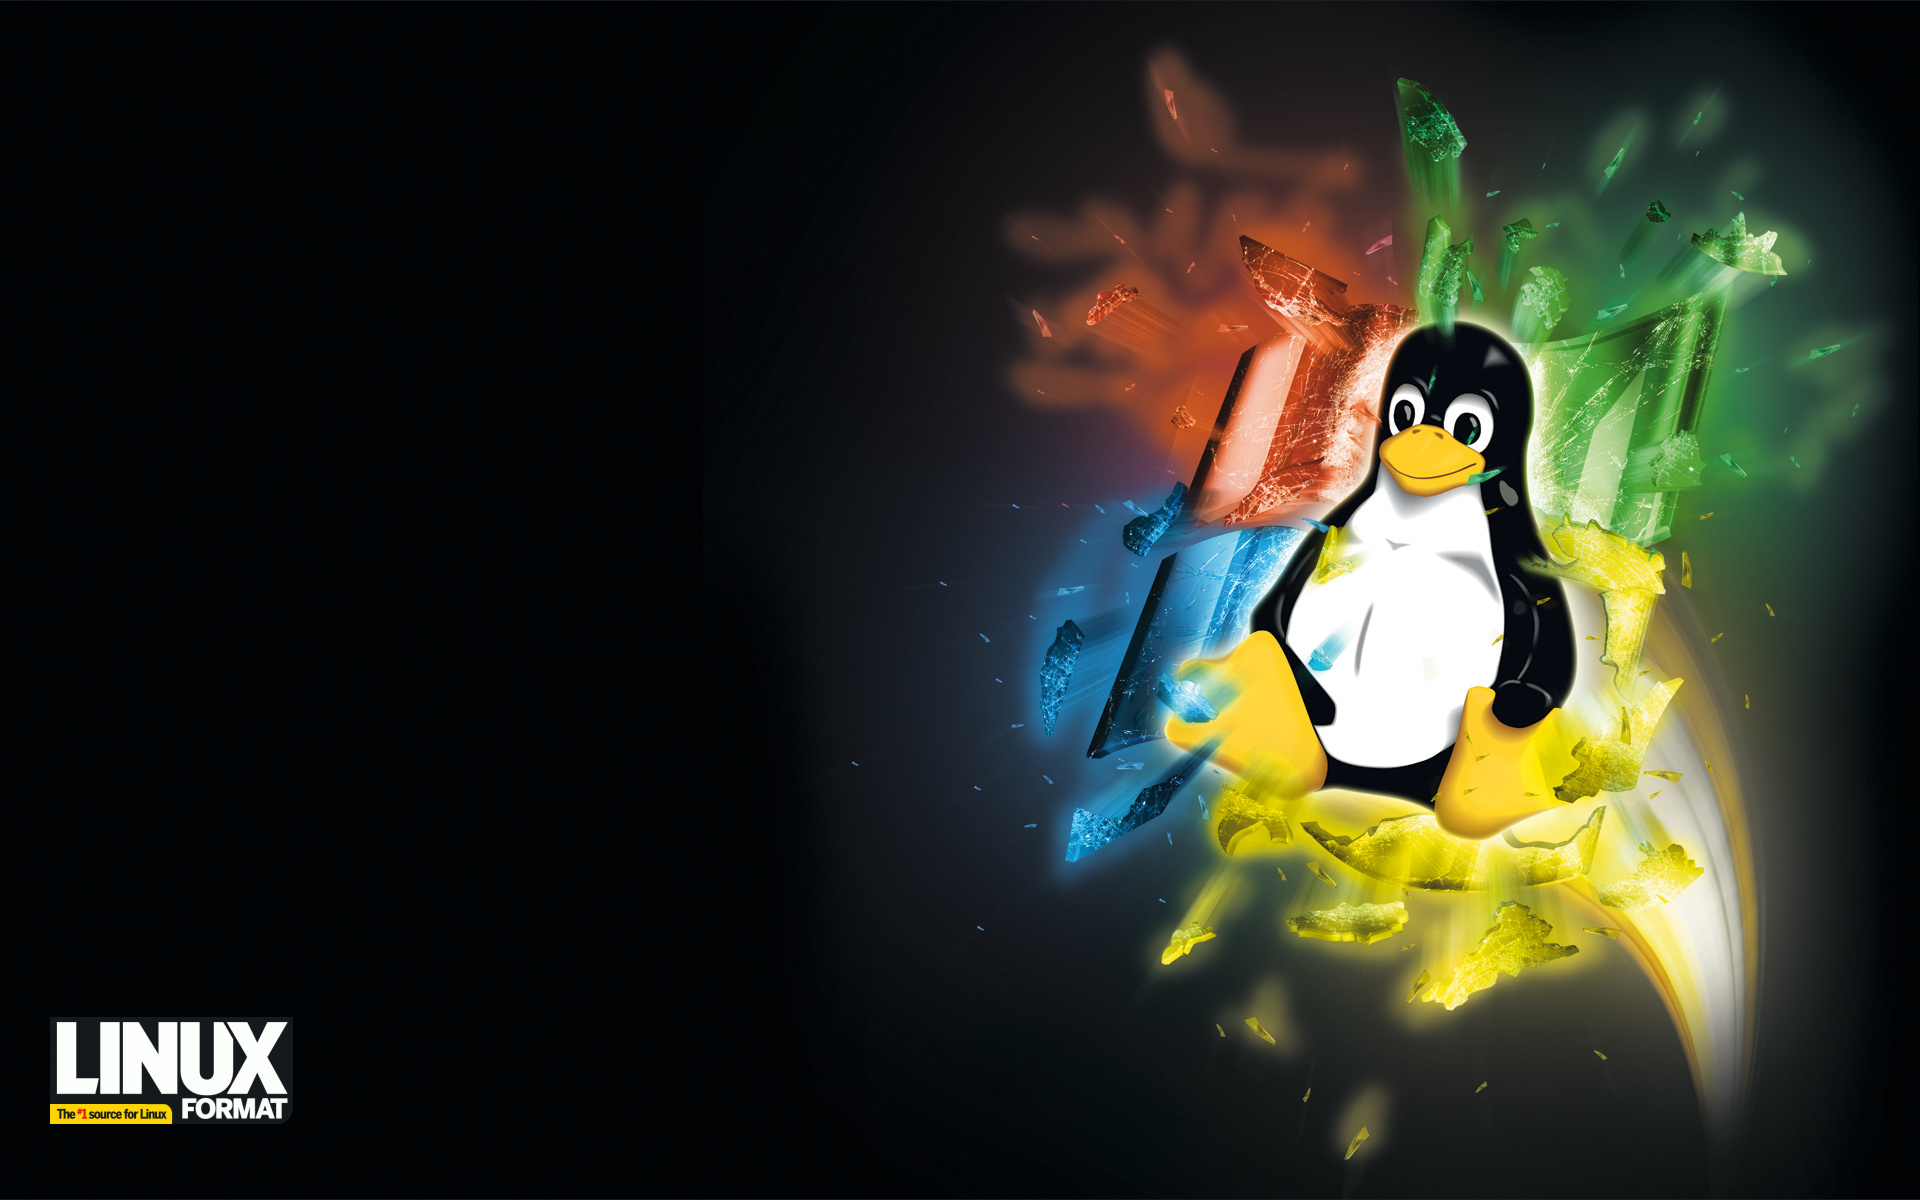 Microsoft Desktop Backgrounds on Linux Tux Microsoft Windows Operating System Wars Hd Wallpaper